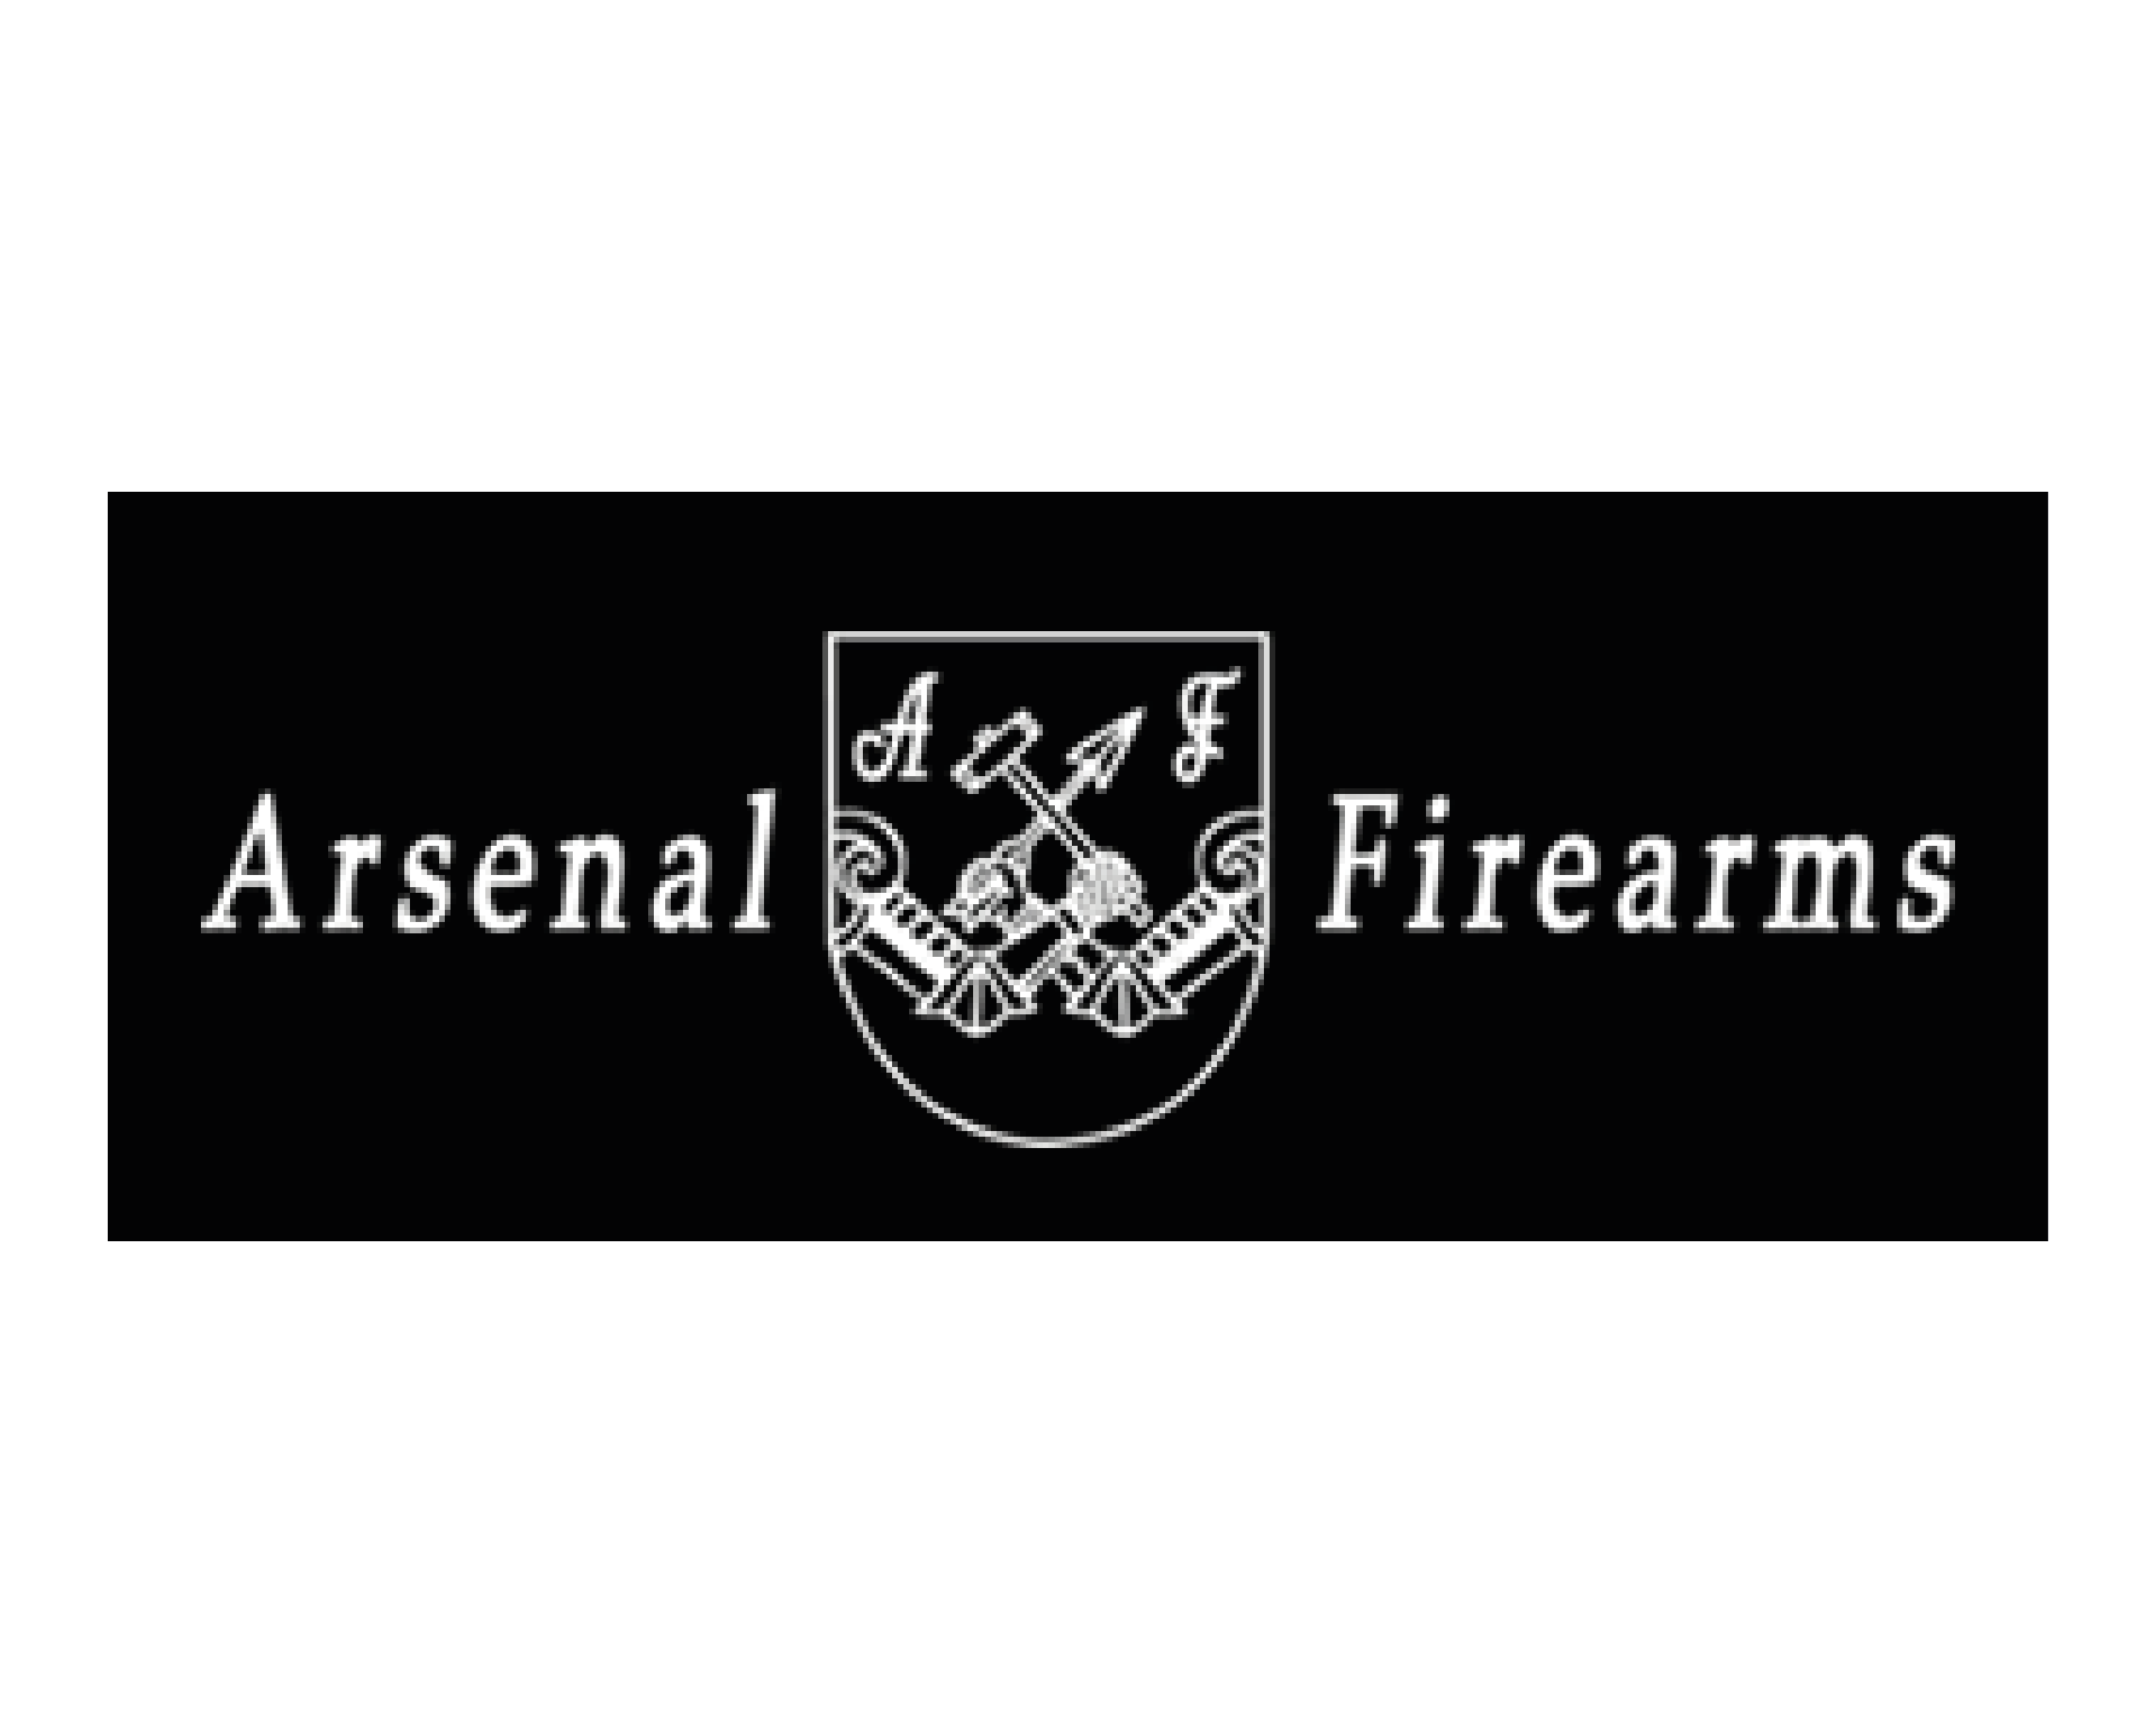 //centre-tir.ch/wp-content/uploads/2017/10/logo-arsenal-firearms.png